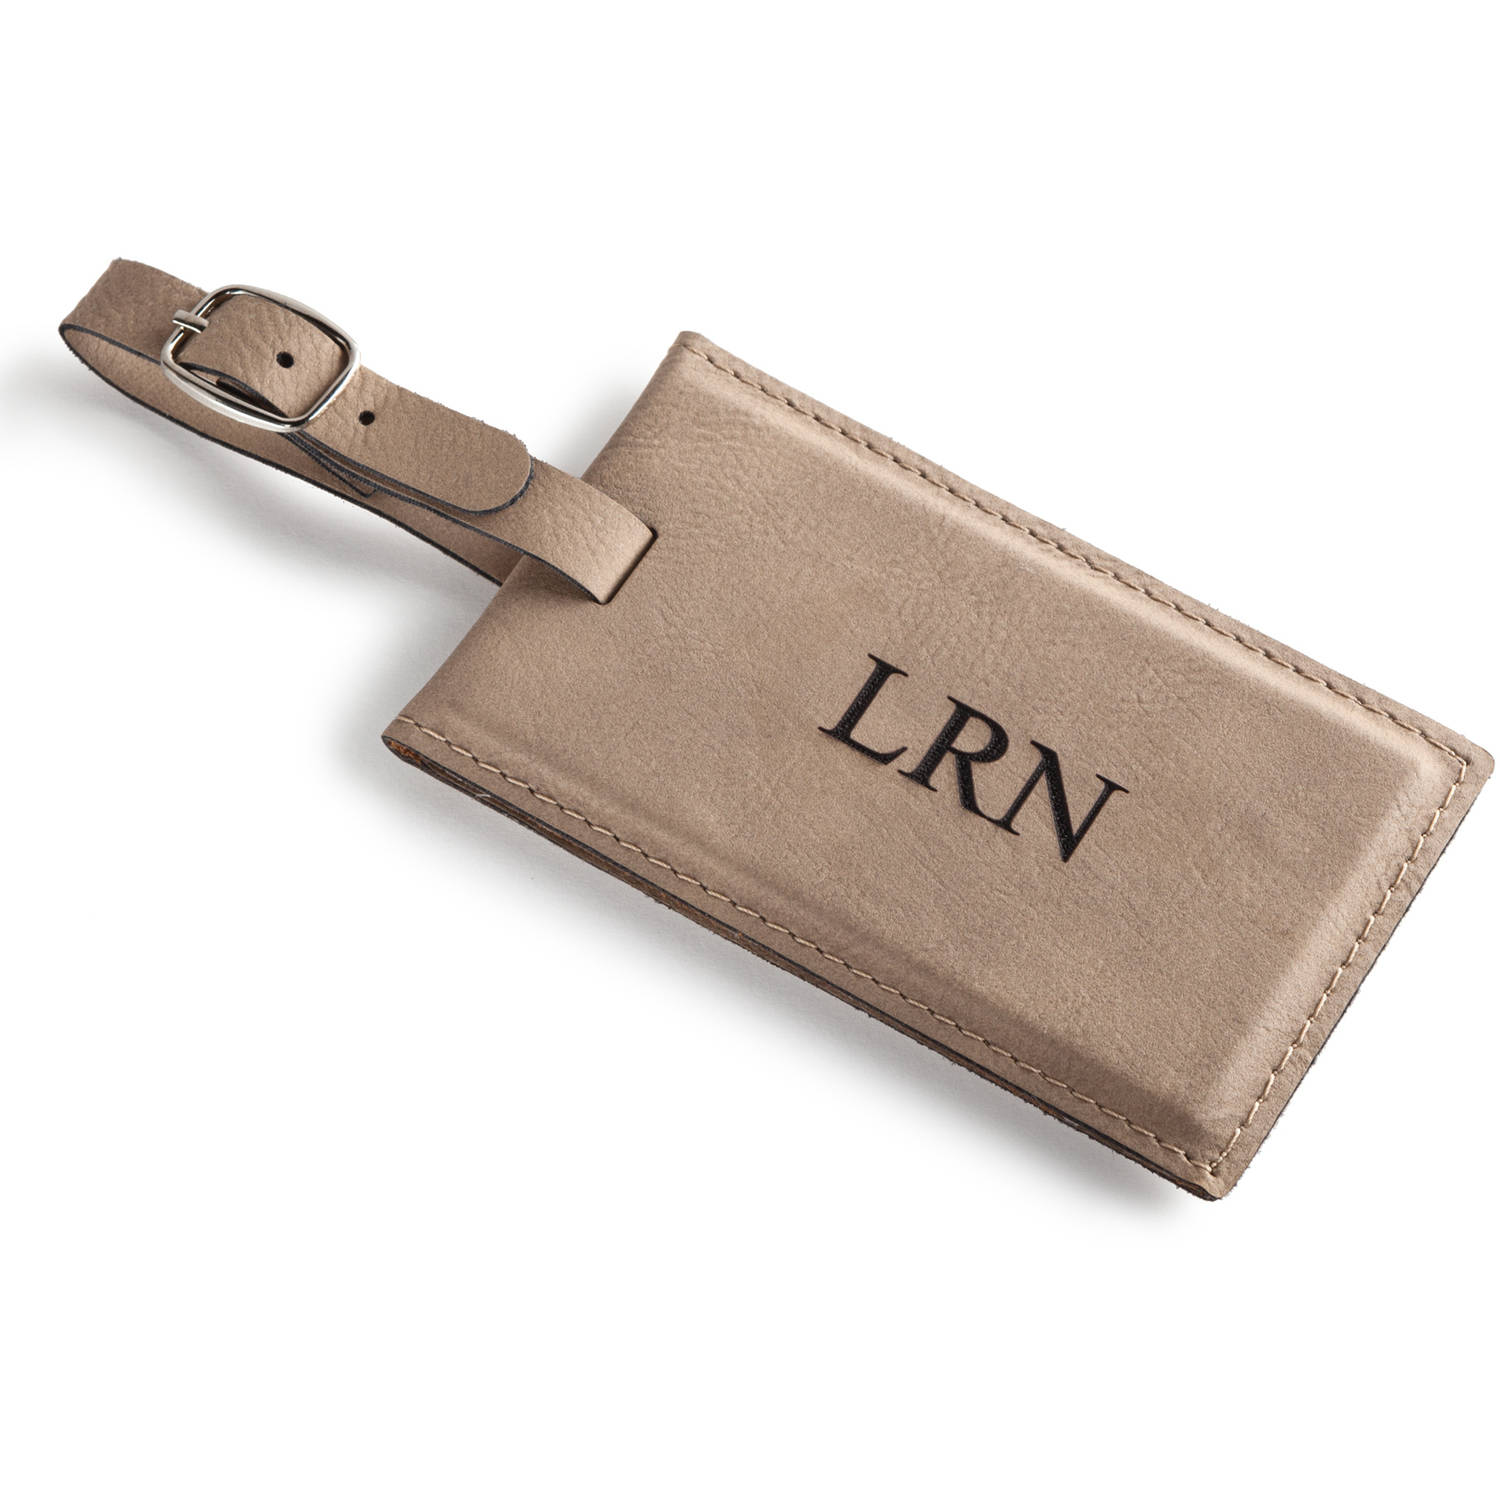 Personalized Luggage Tag With Strap